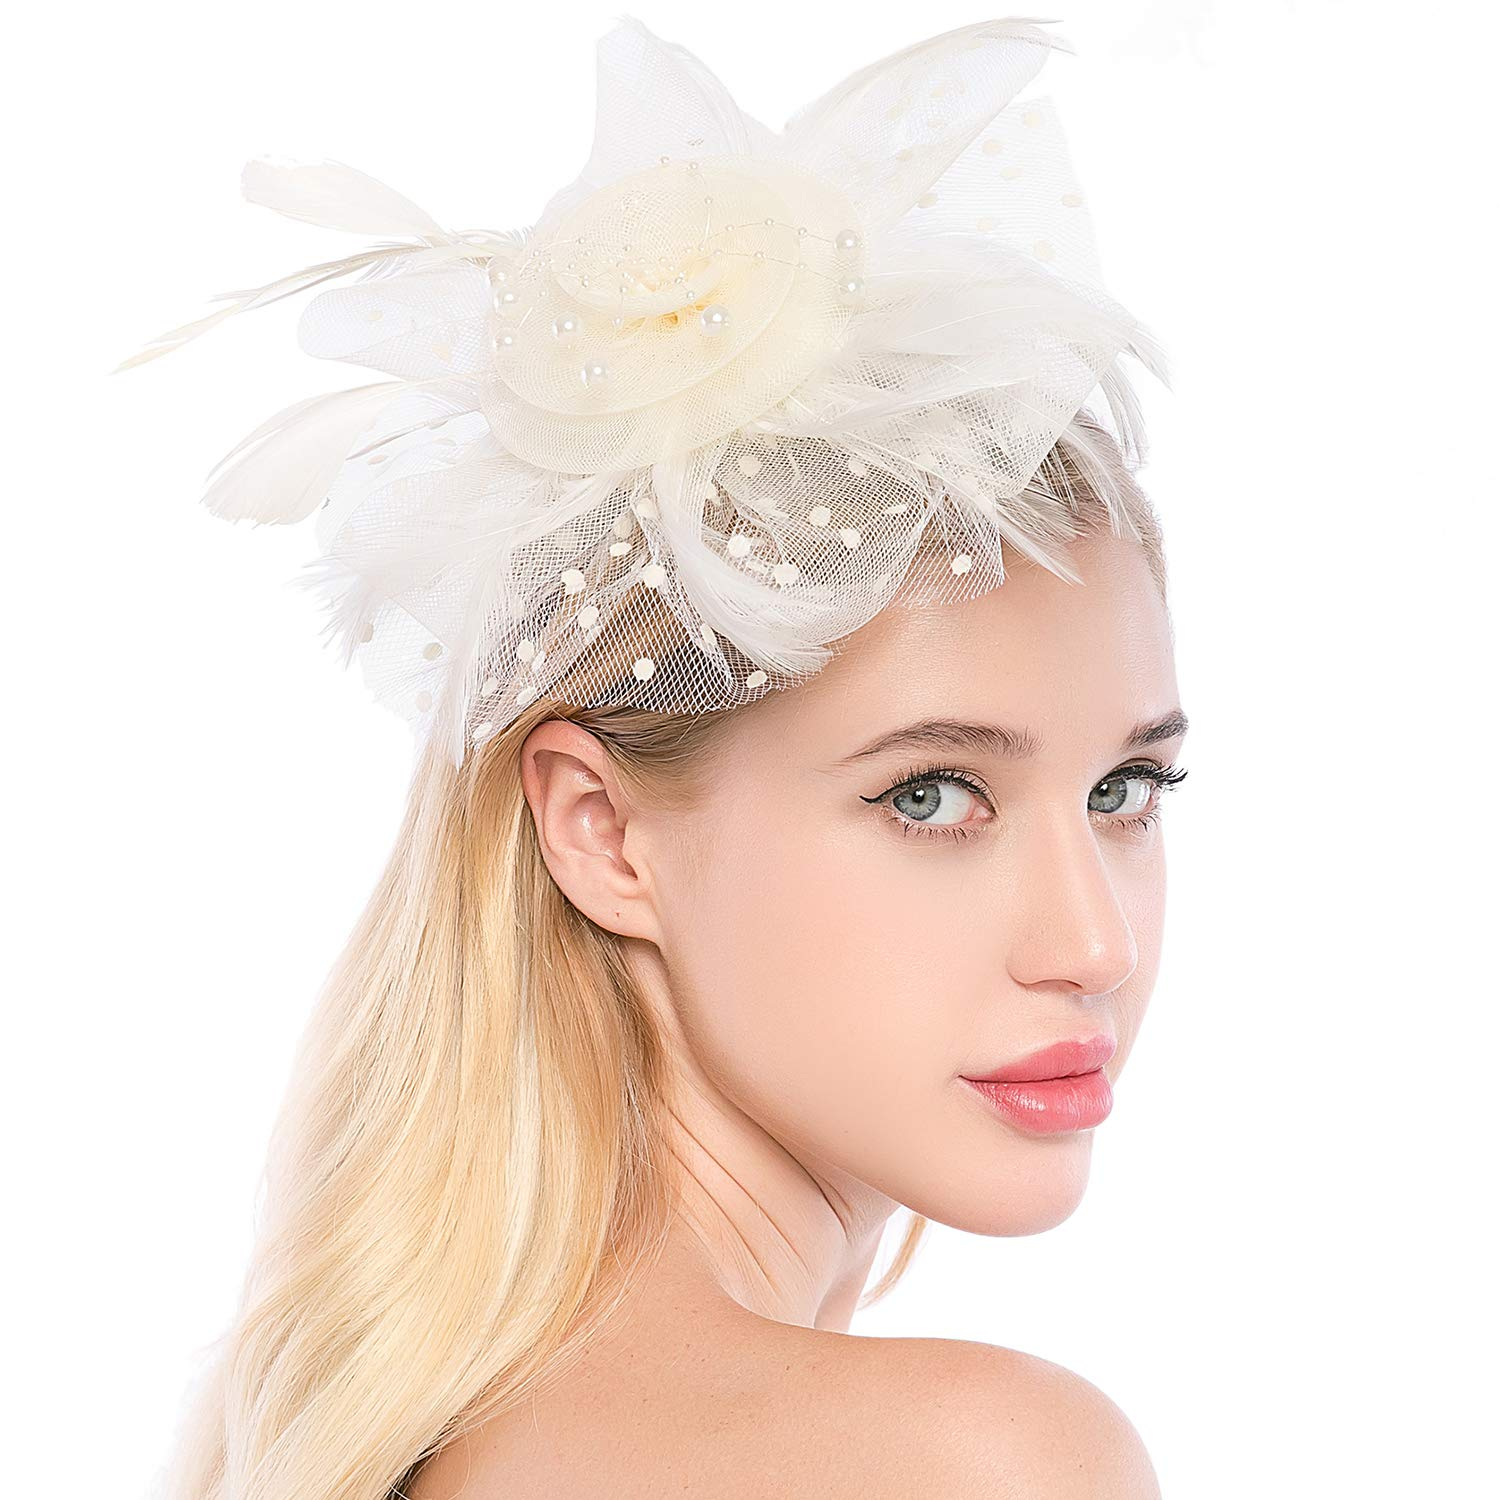 Xflyee Fascinators Hat Flower Mesh Ribbons Feathers Tea Party Cocktail Headband for Girls and Women (White / 7 Inch Diameter)